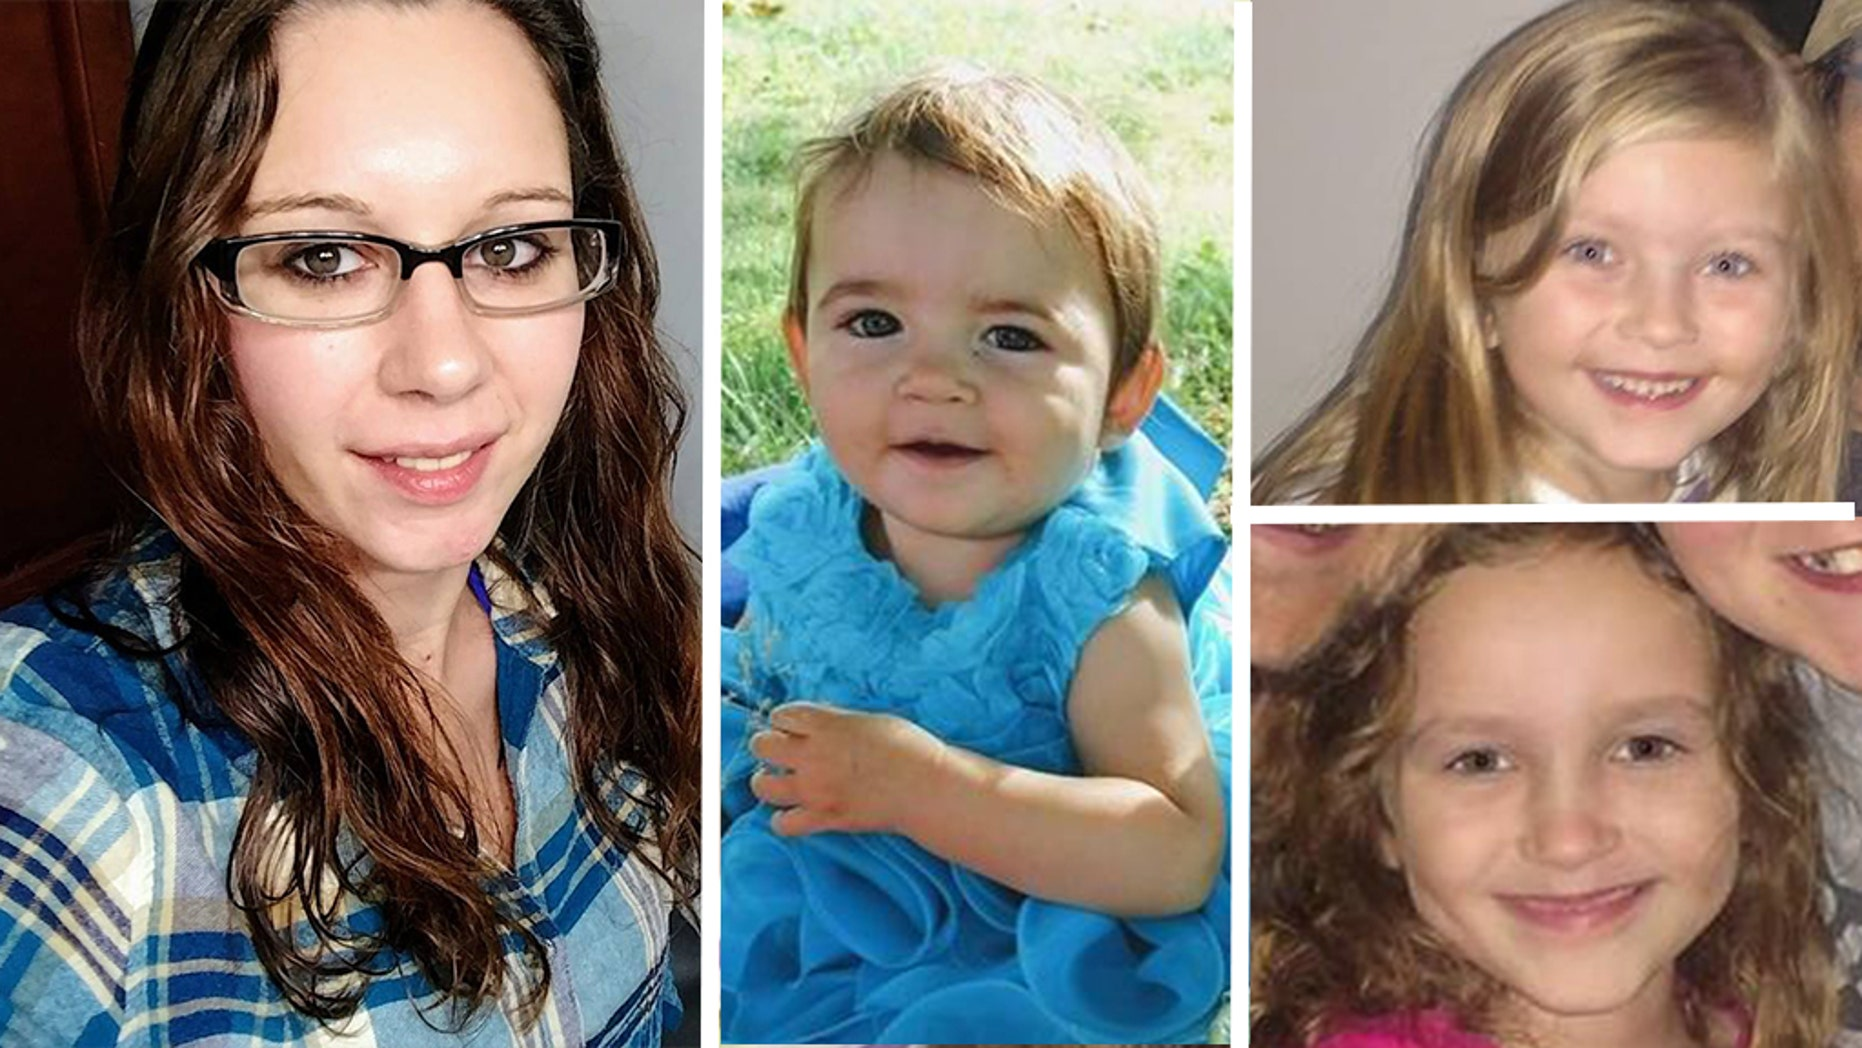 The bodies of Aubrianne Moore, 28 and her daughters Alaina Rau, 2; Cassidy Rodery, 6; and Kyrie Rodery, 8, were found Monday at a property near Cedar Springs, a community about 30 miles north of Grand Rapids.